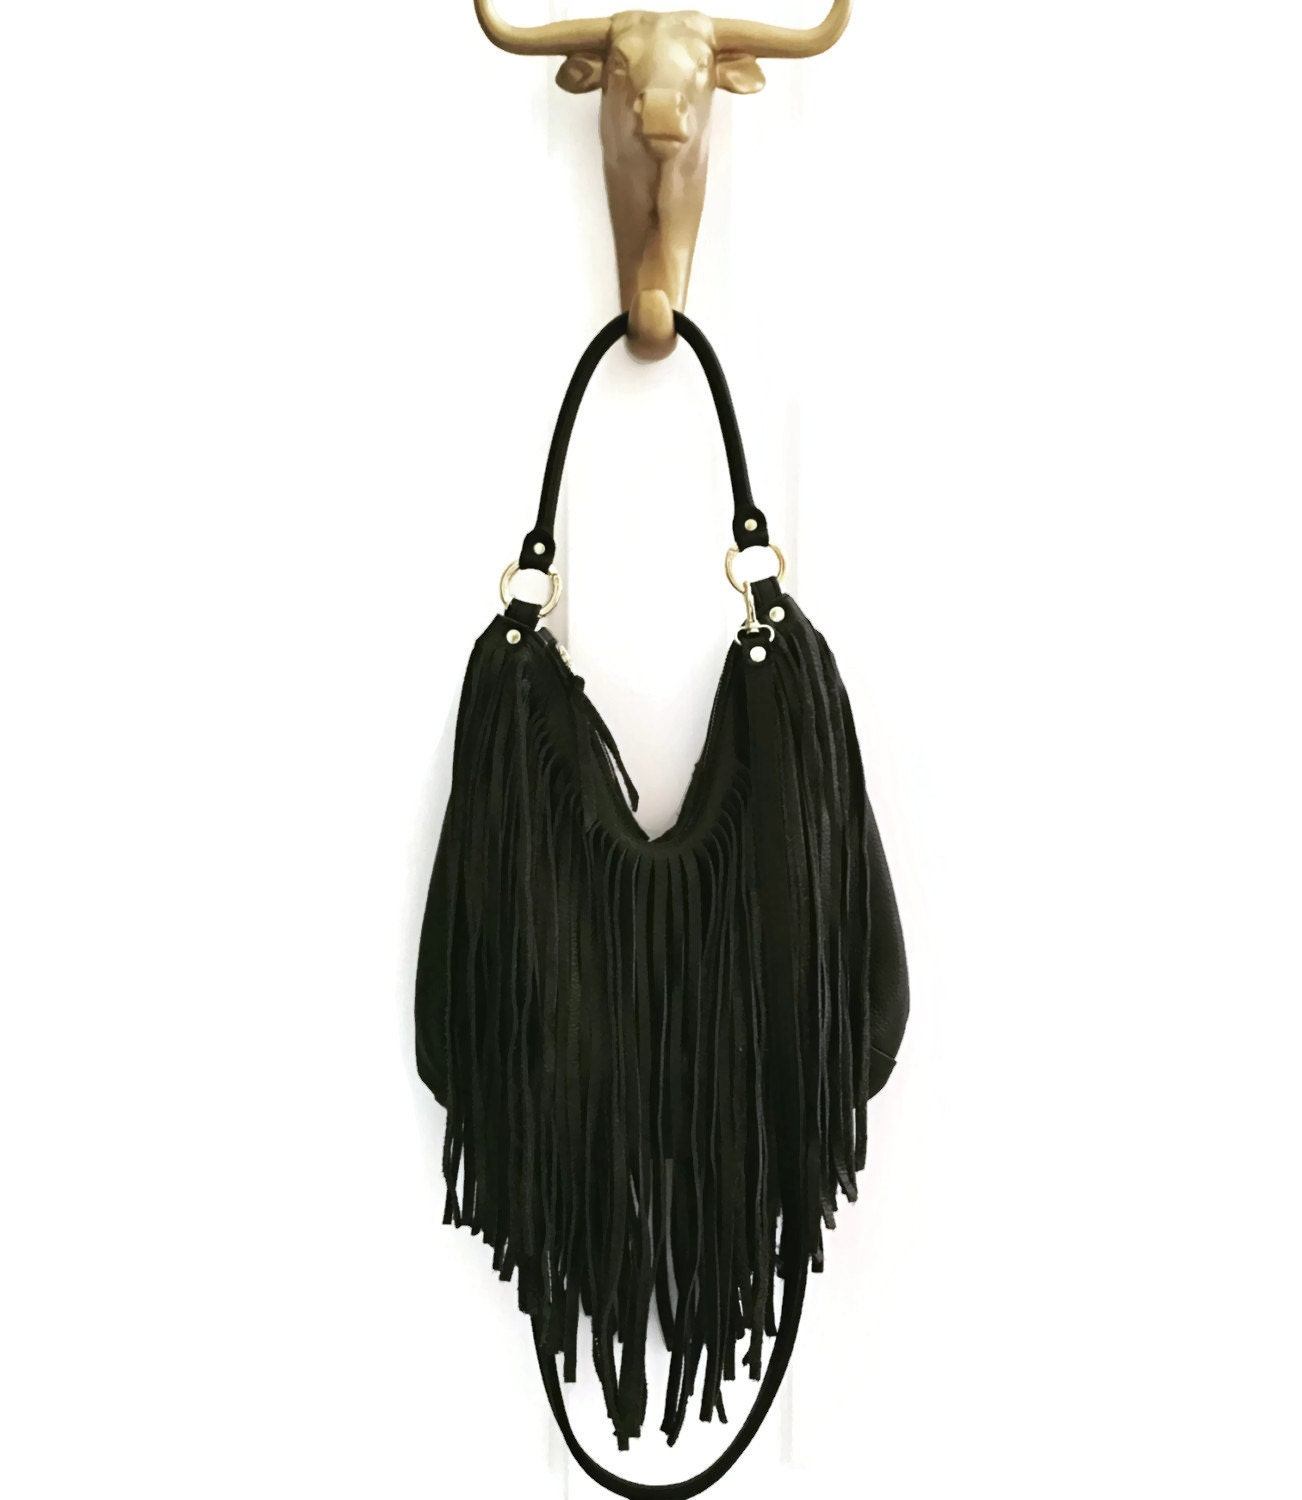 Black Fringe Hobo Handbag // Crossbody // Convertible Bag ...